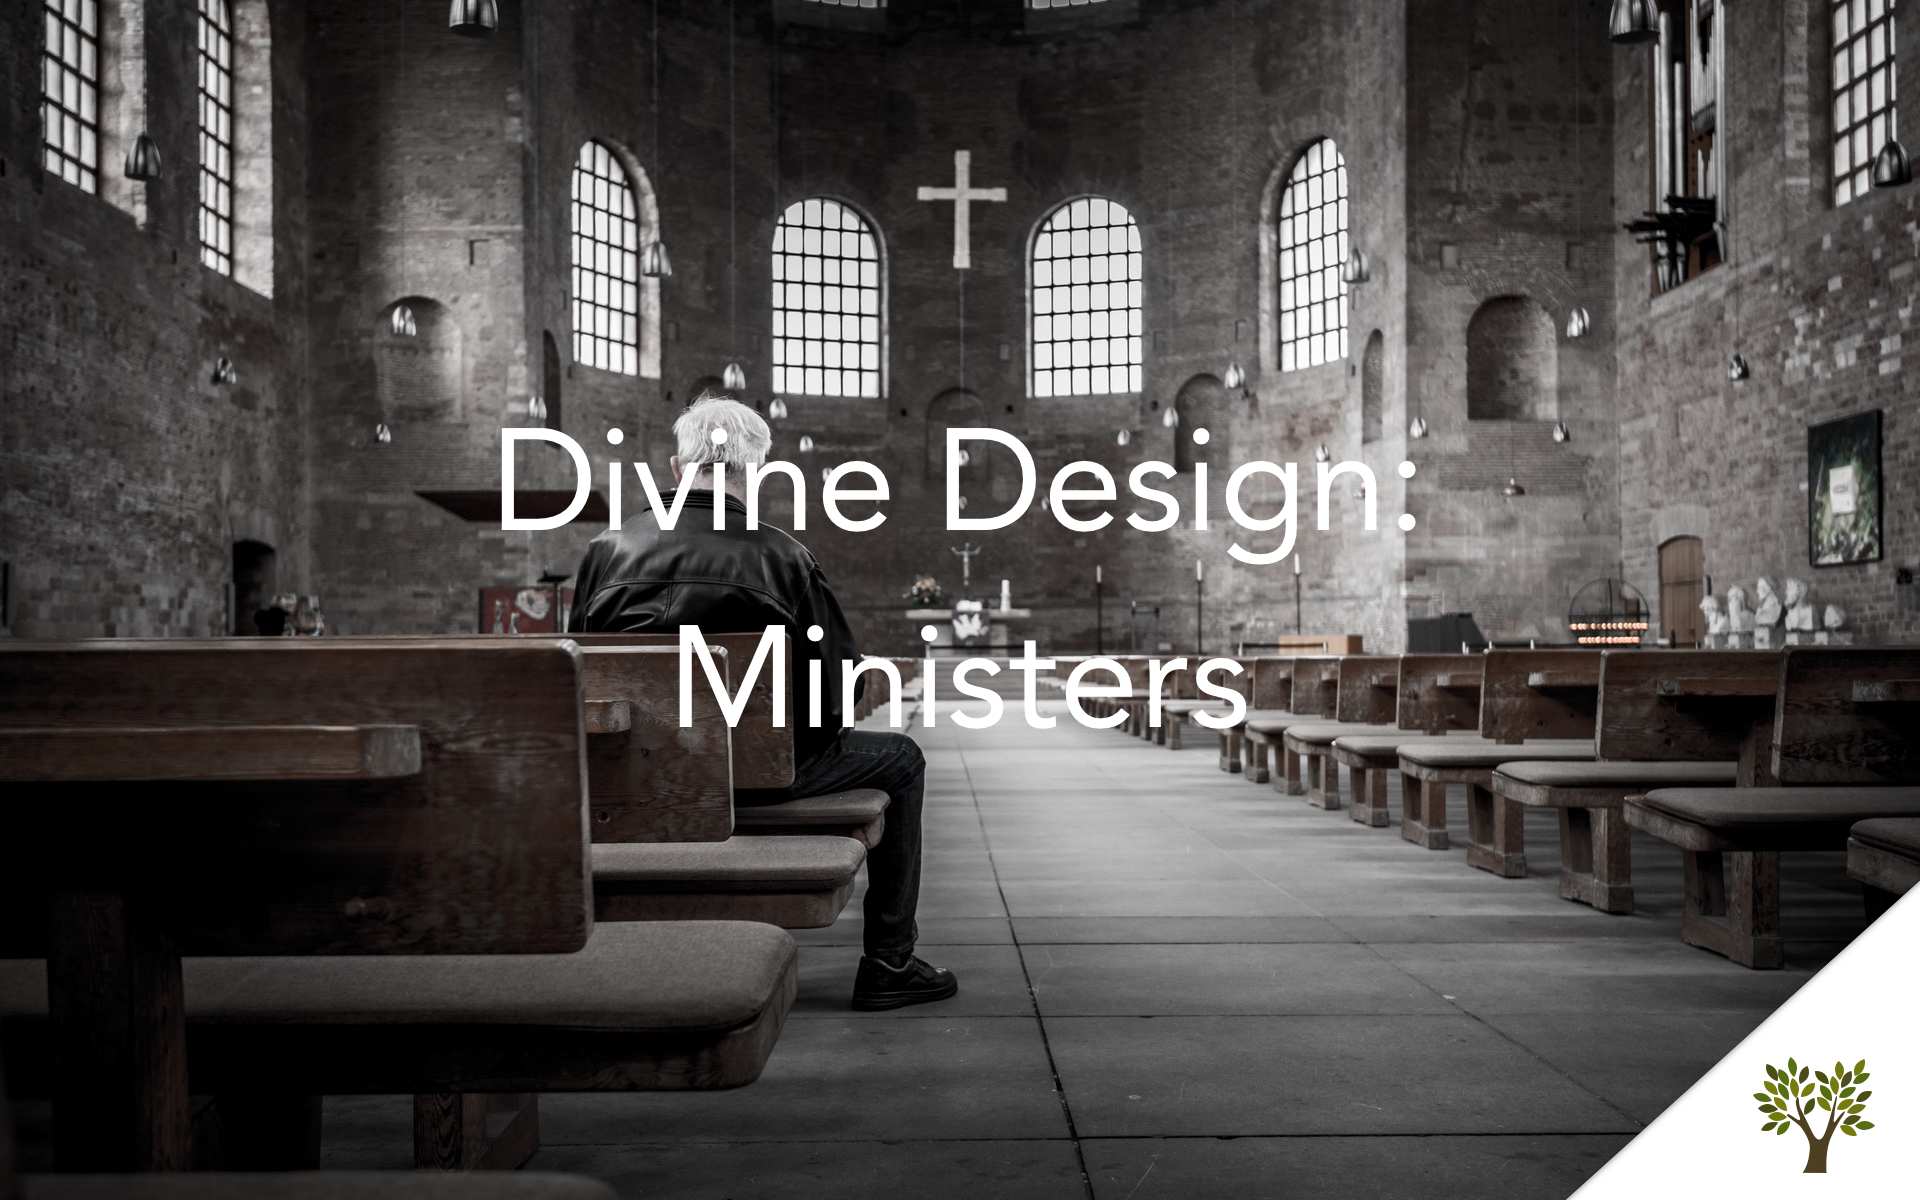 Divine Design: Ministers  Terry Fant